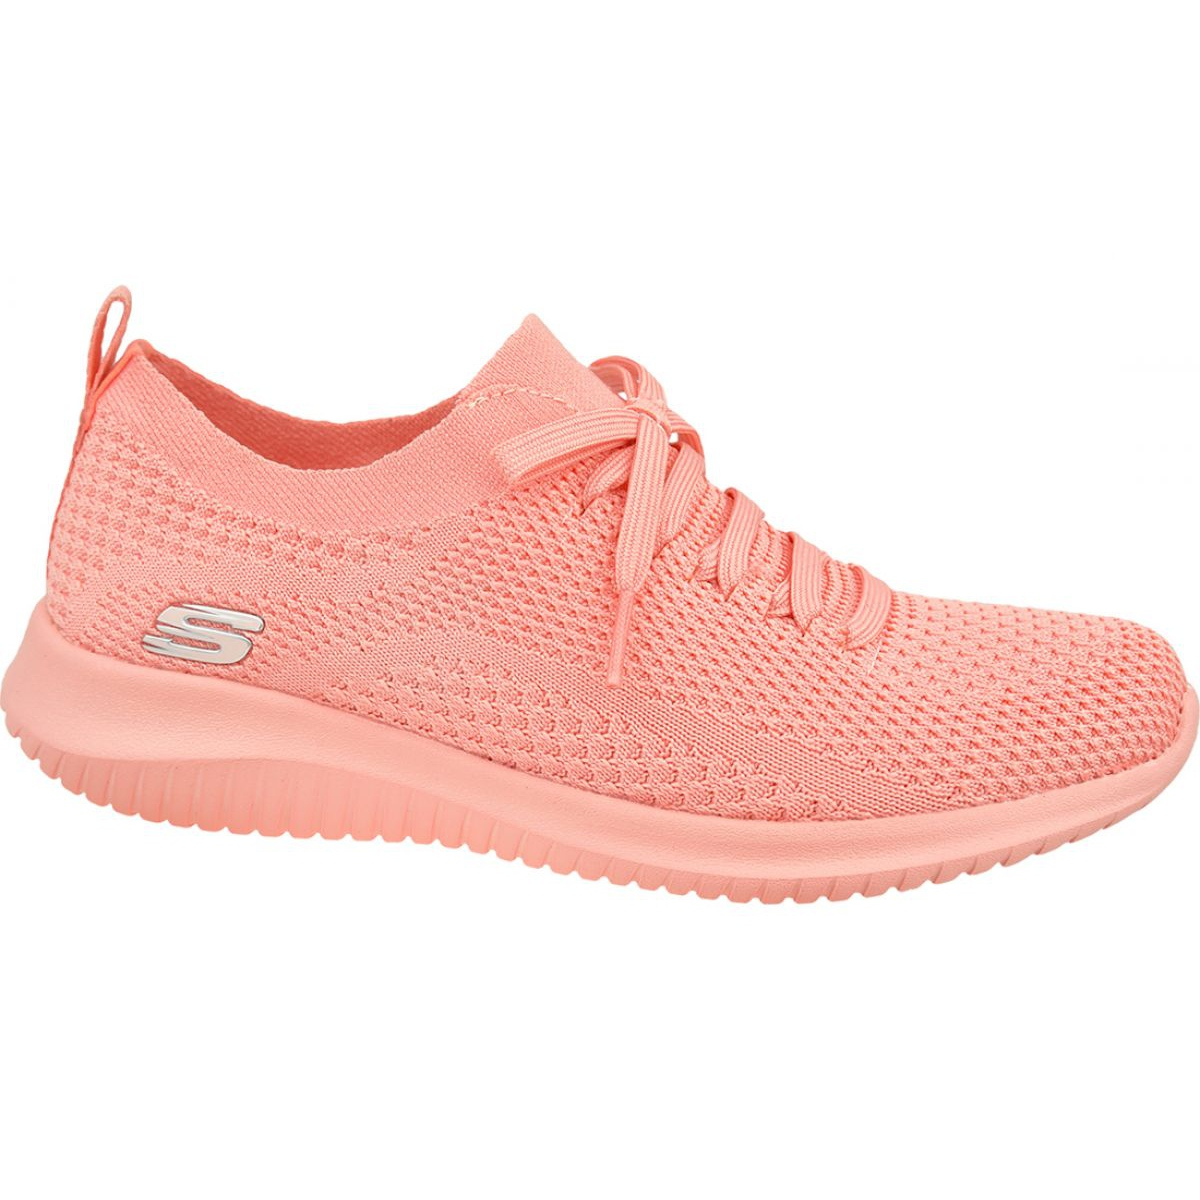 hilo Permeabilidad ir de compras  Skechers Ultra Flex Pastel Party W 13098-CRL shoes pink - ButyModne.pl